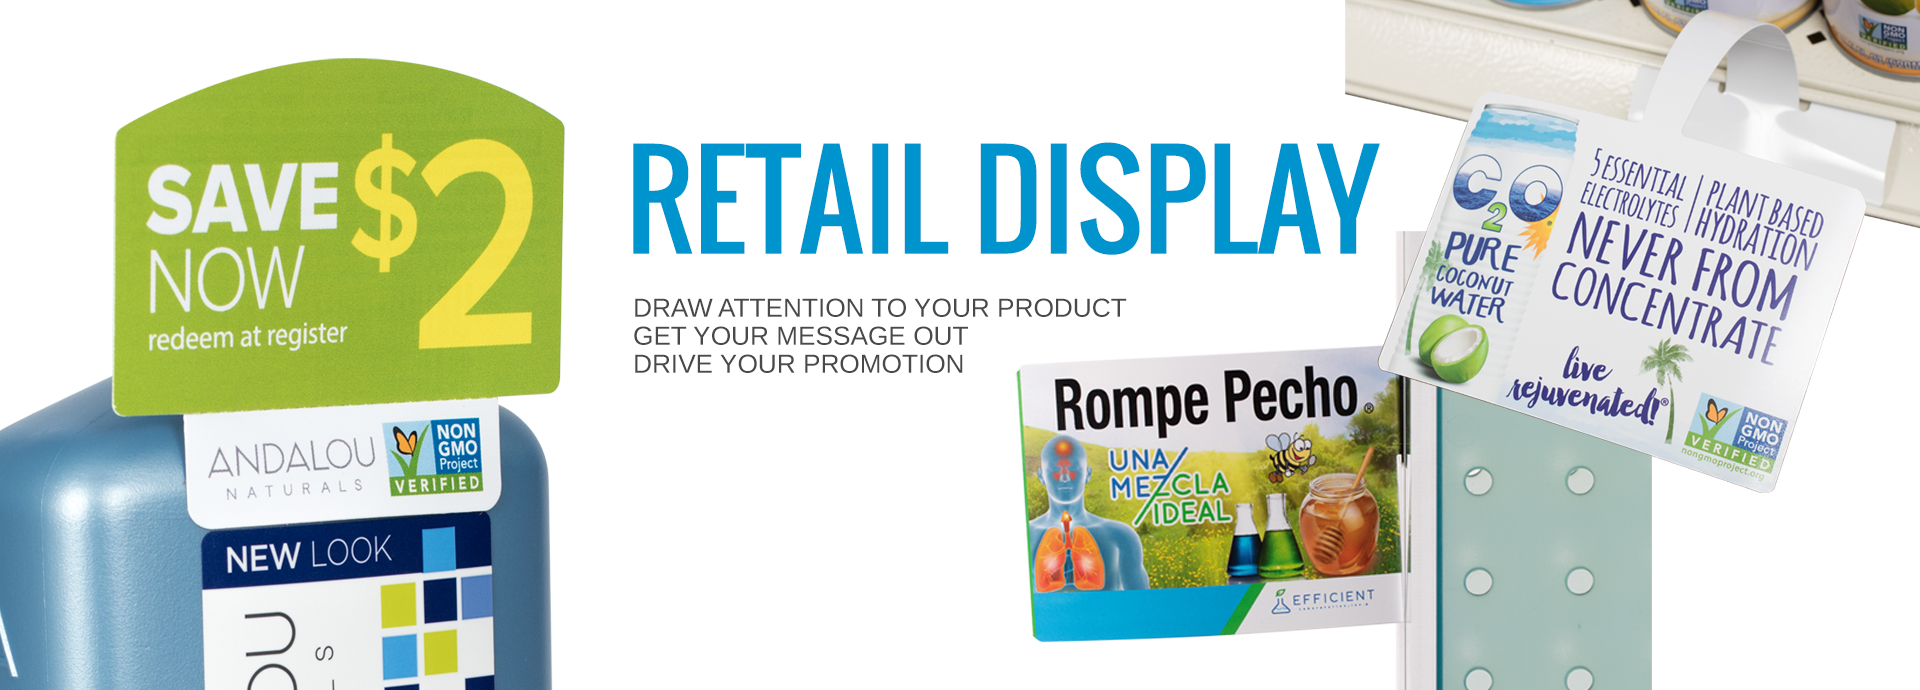 Retail Display Design